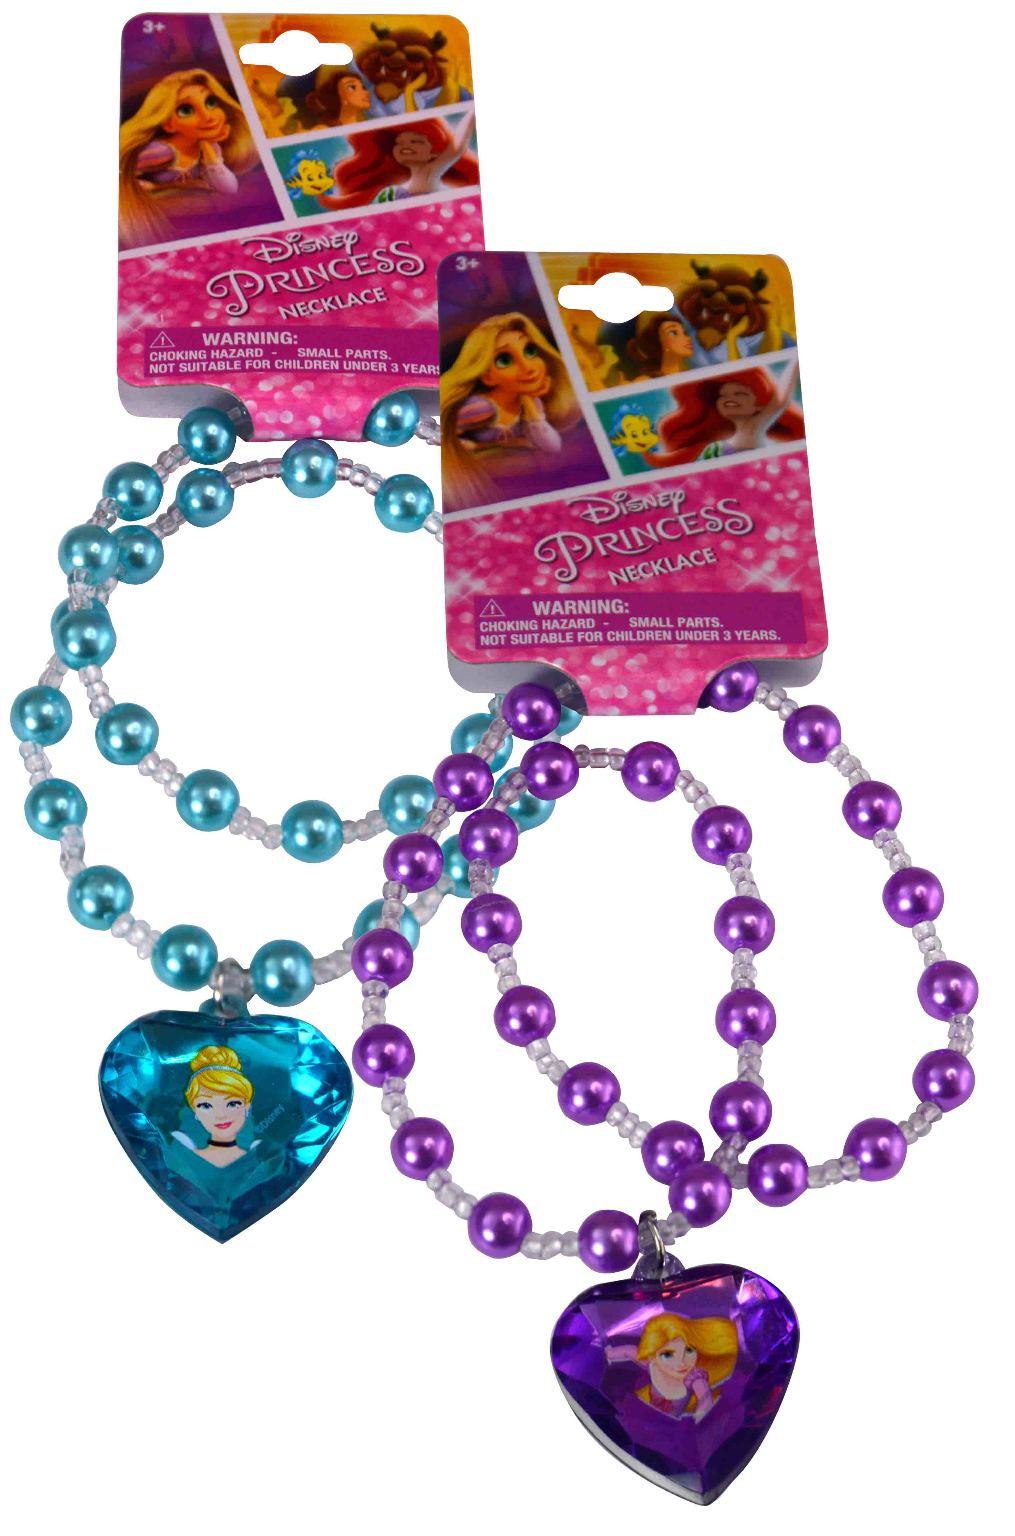 Princess Bowtique Pearl Necklace with 3D Gem - Assorted - CASE OF 288